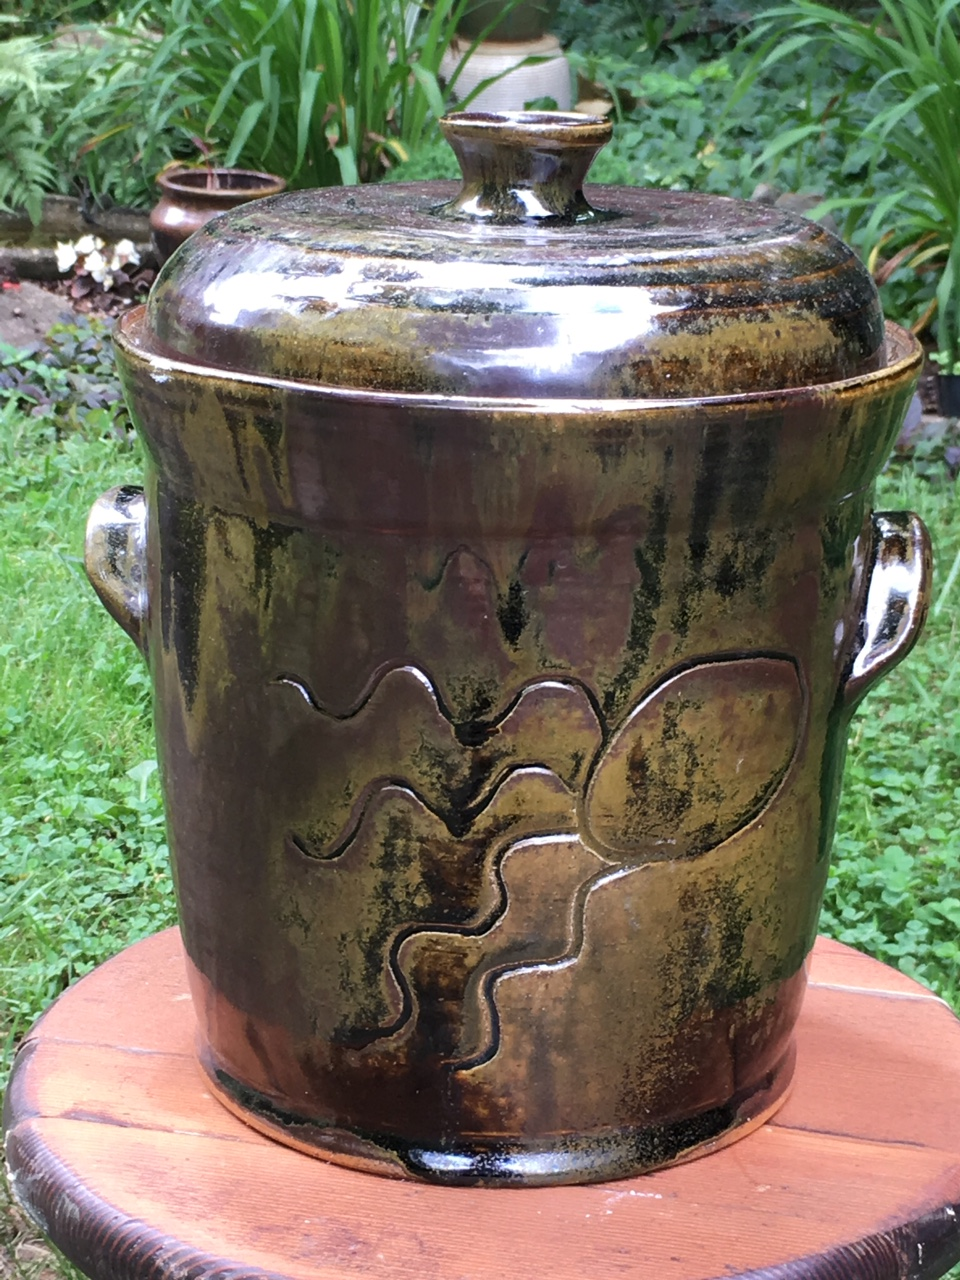 A two-gallon fermentation crock.  The lid sits in a channel that is filled with water to serve as a fermentation lock.  The carving represents the hard-working bacteria that carry out fermentation.